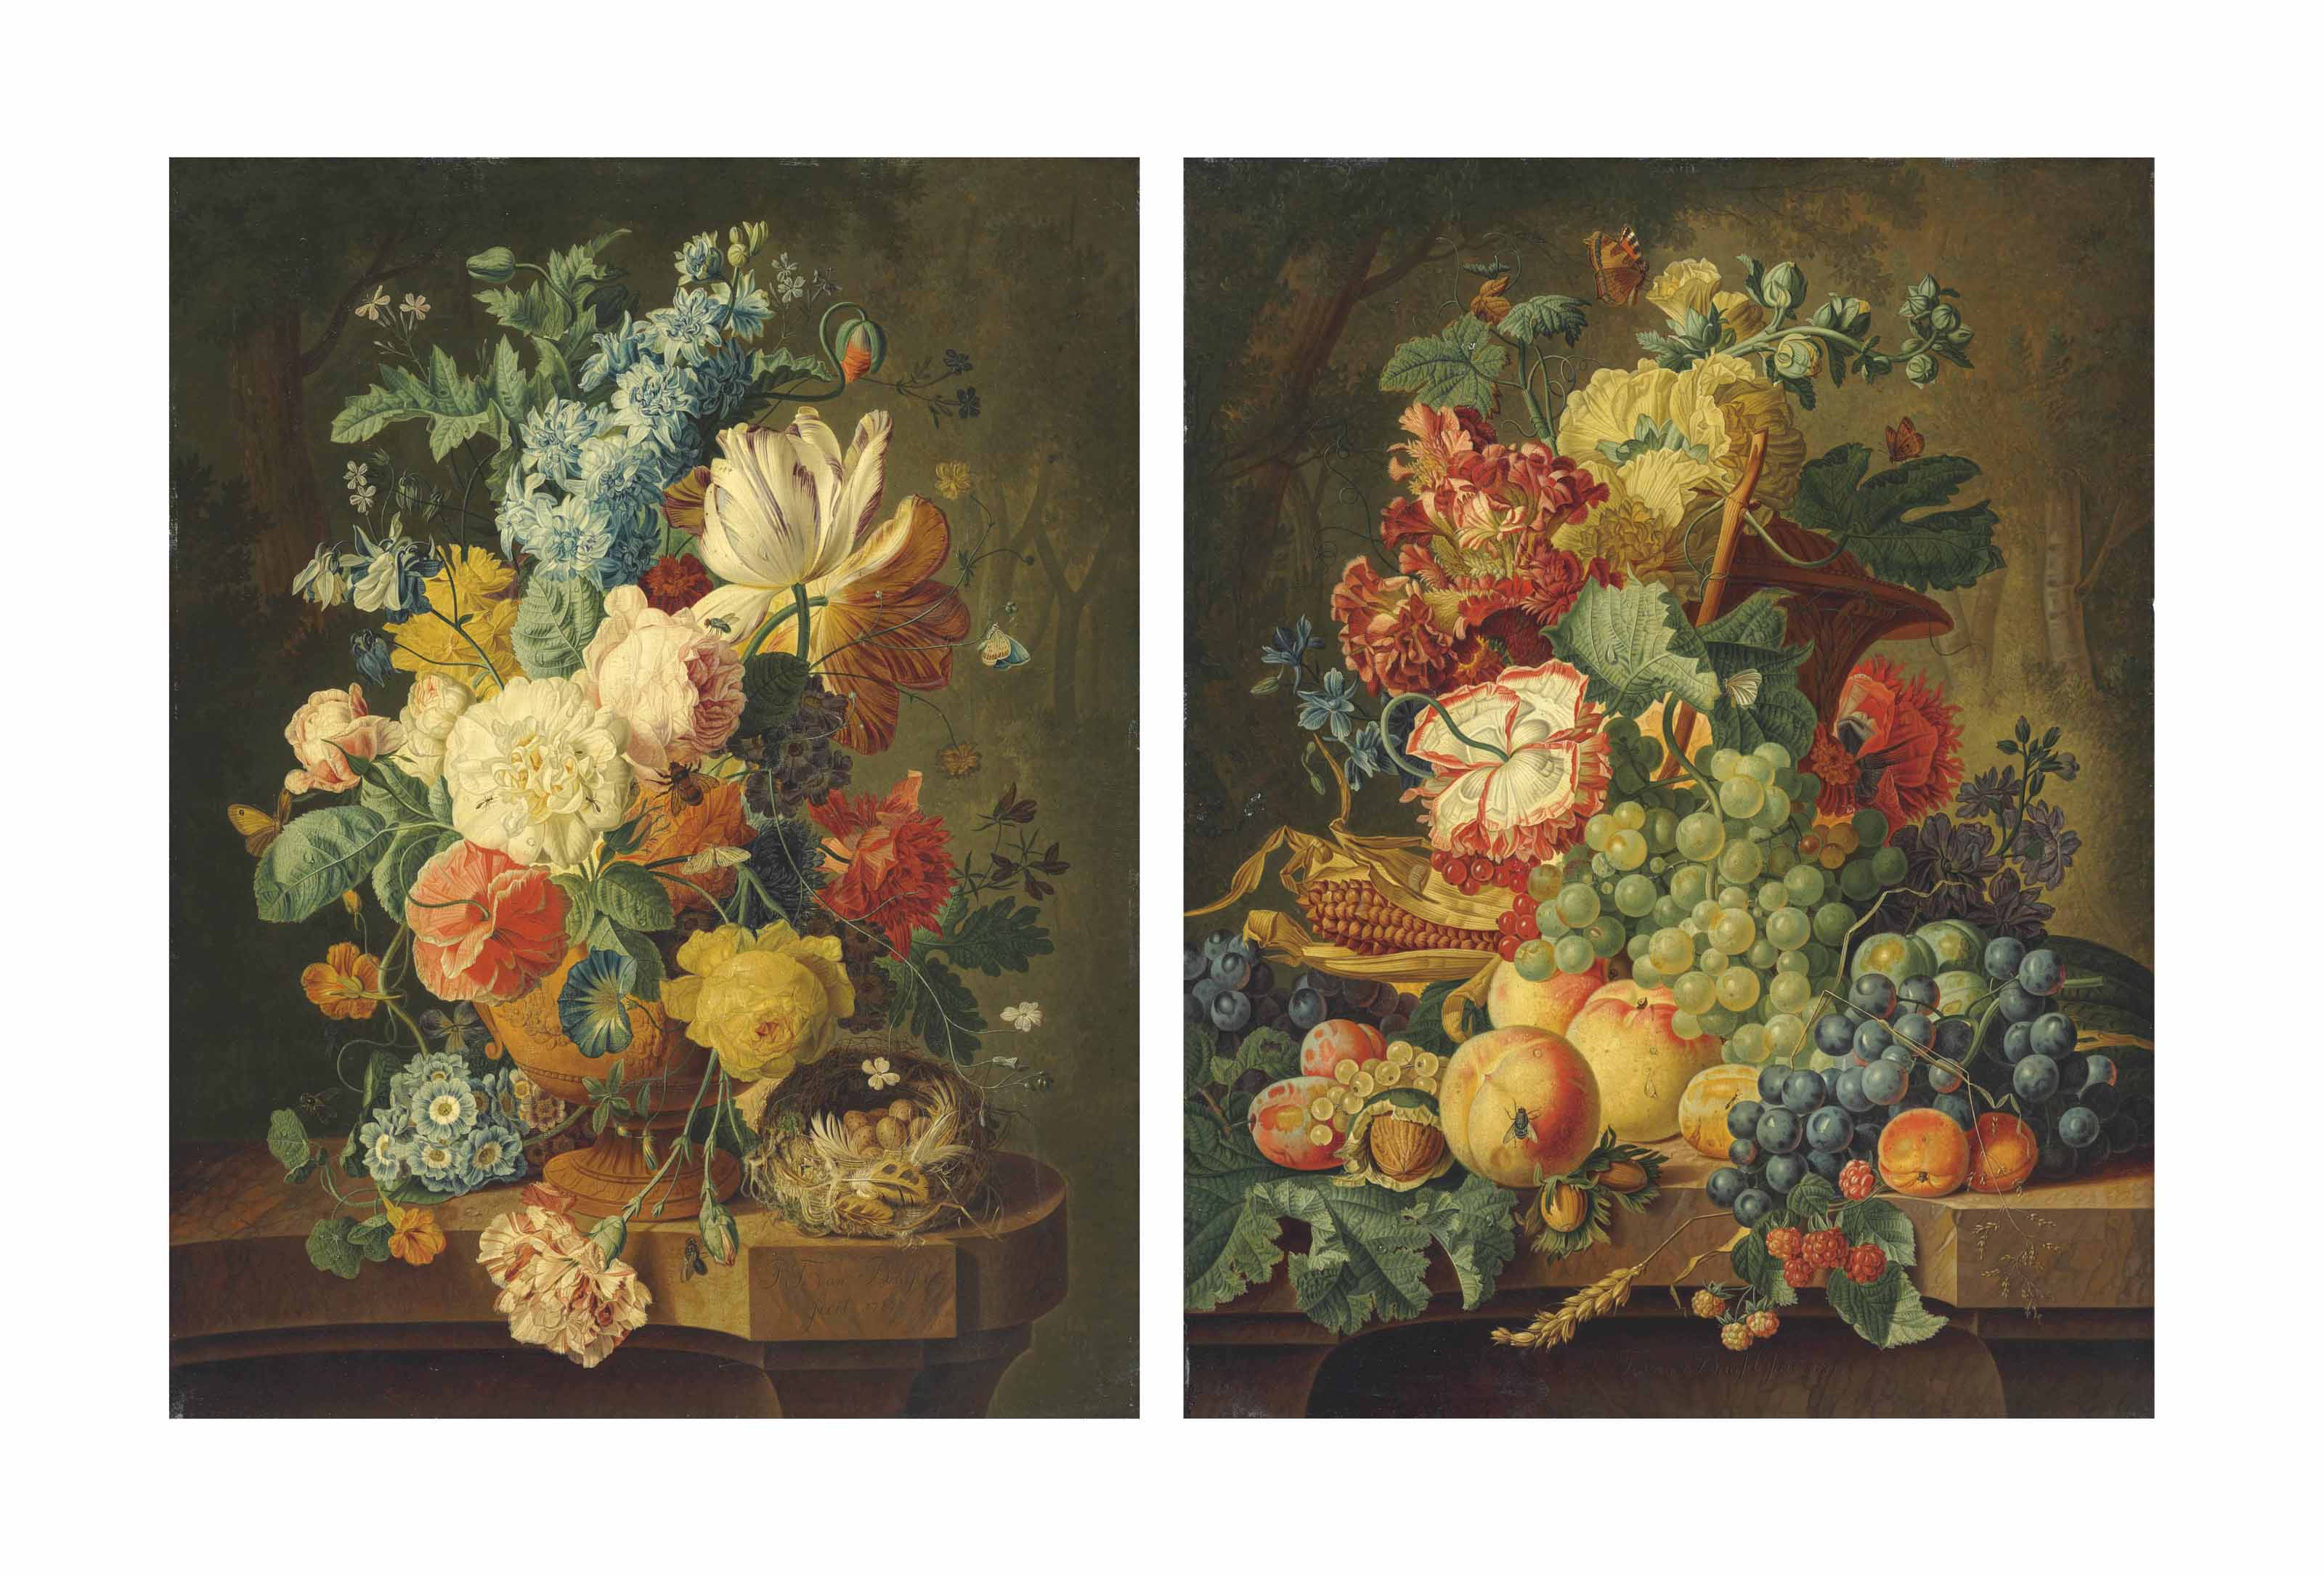 Tulips, poppies, carnations and other flowers in a vase with a bird's nest on a marble ledge; and Grapes, corn on the cob, peaches, plums, raspberries and mixed flowers on a marble ledge